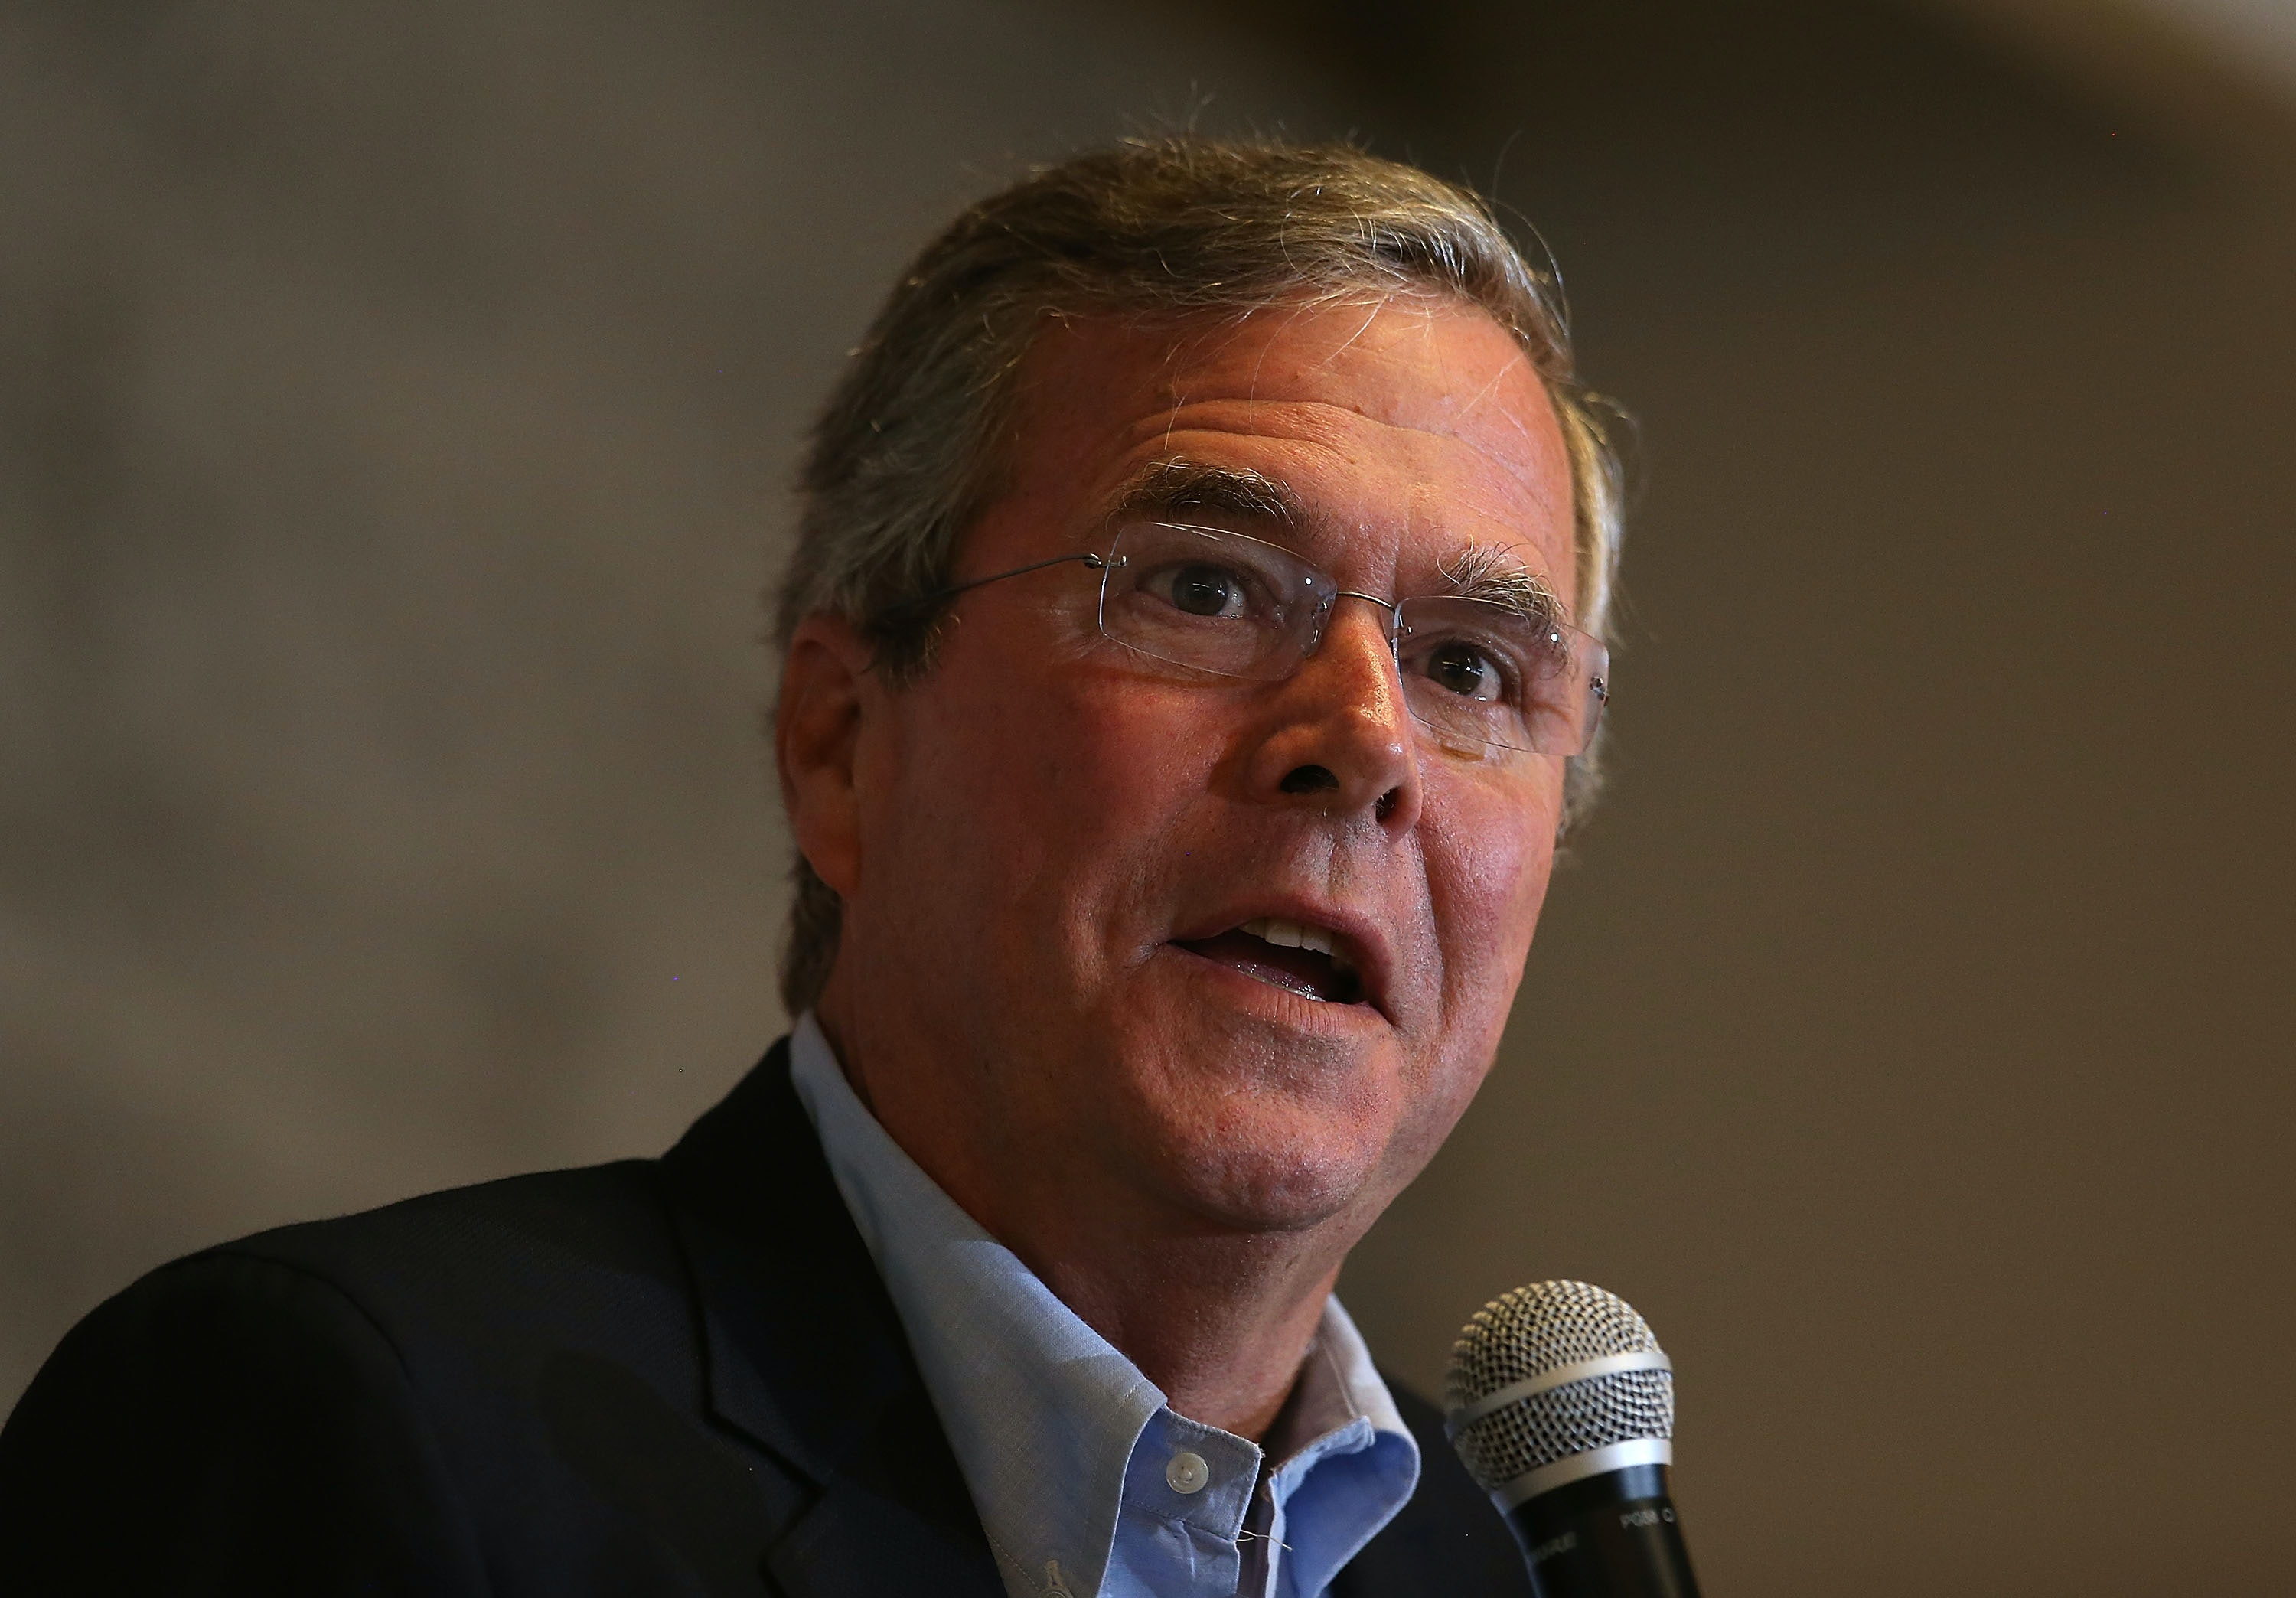 Jeb Bush Quotes 7 Jeb Bush Quotes So Terrible You'll Wish He Were Joking